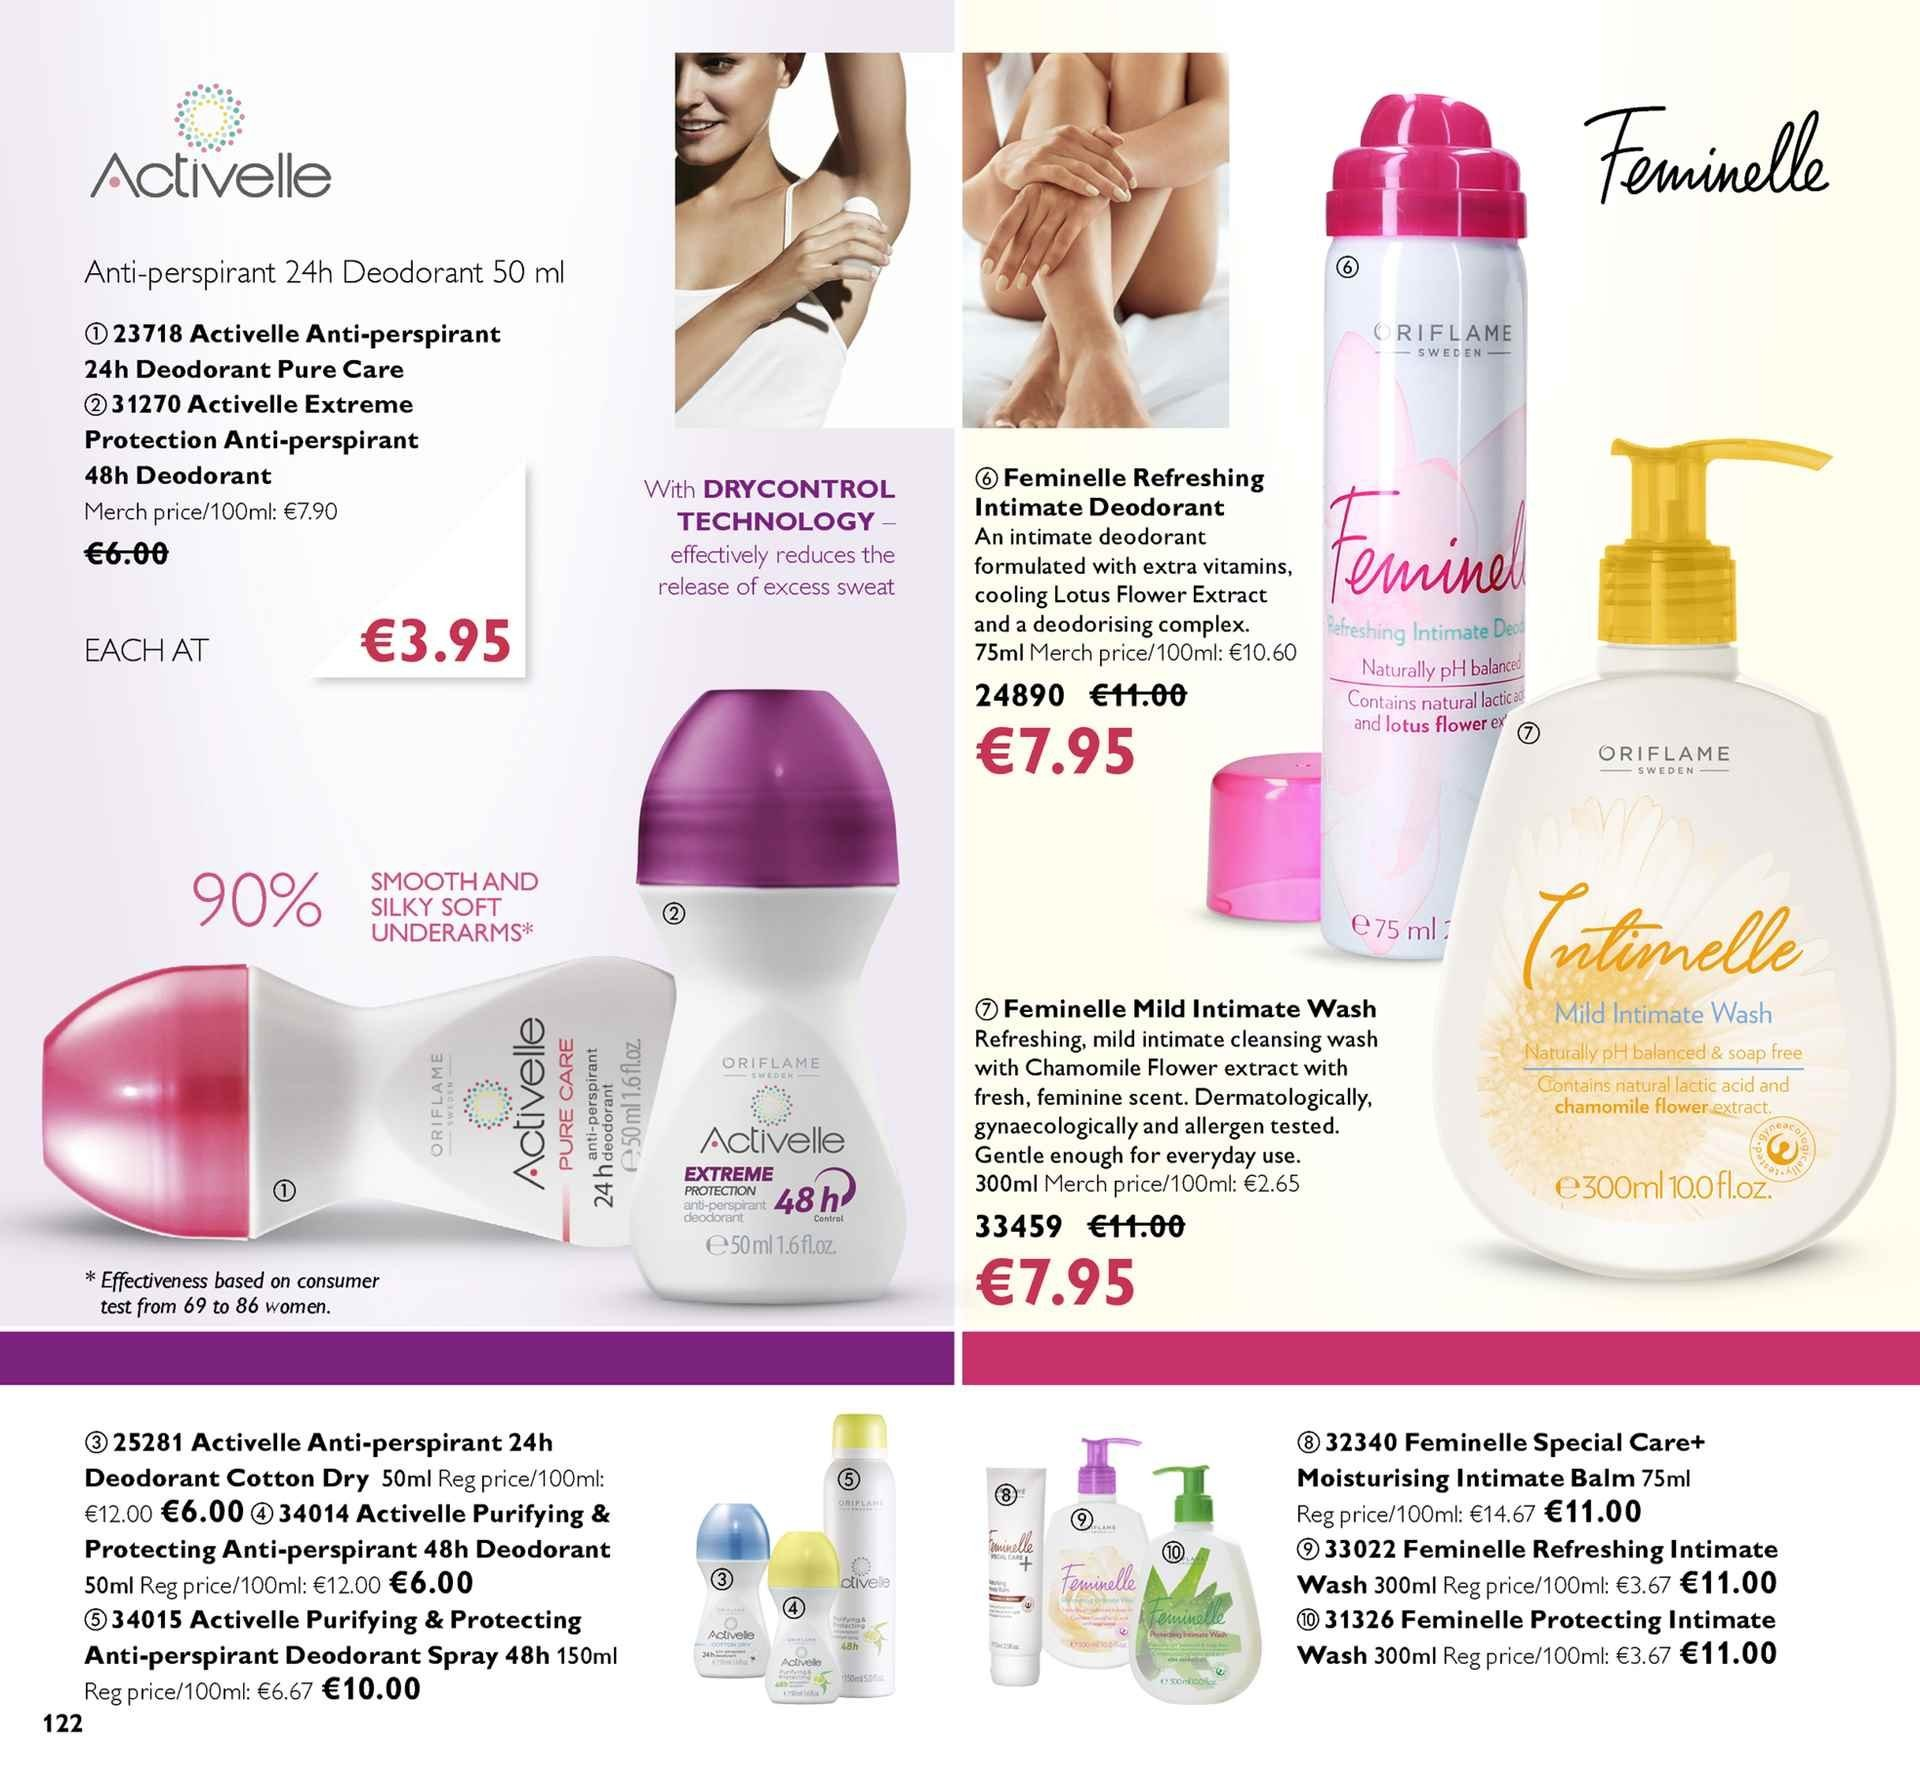 7eae3ecb4f Oriflame offer - 1.3.2019 - 21.3.2019 - Sales products - anti-